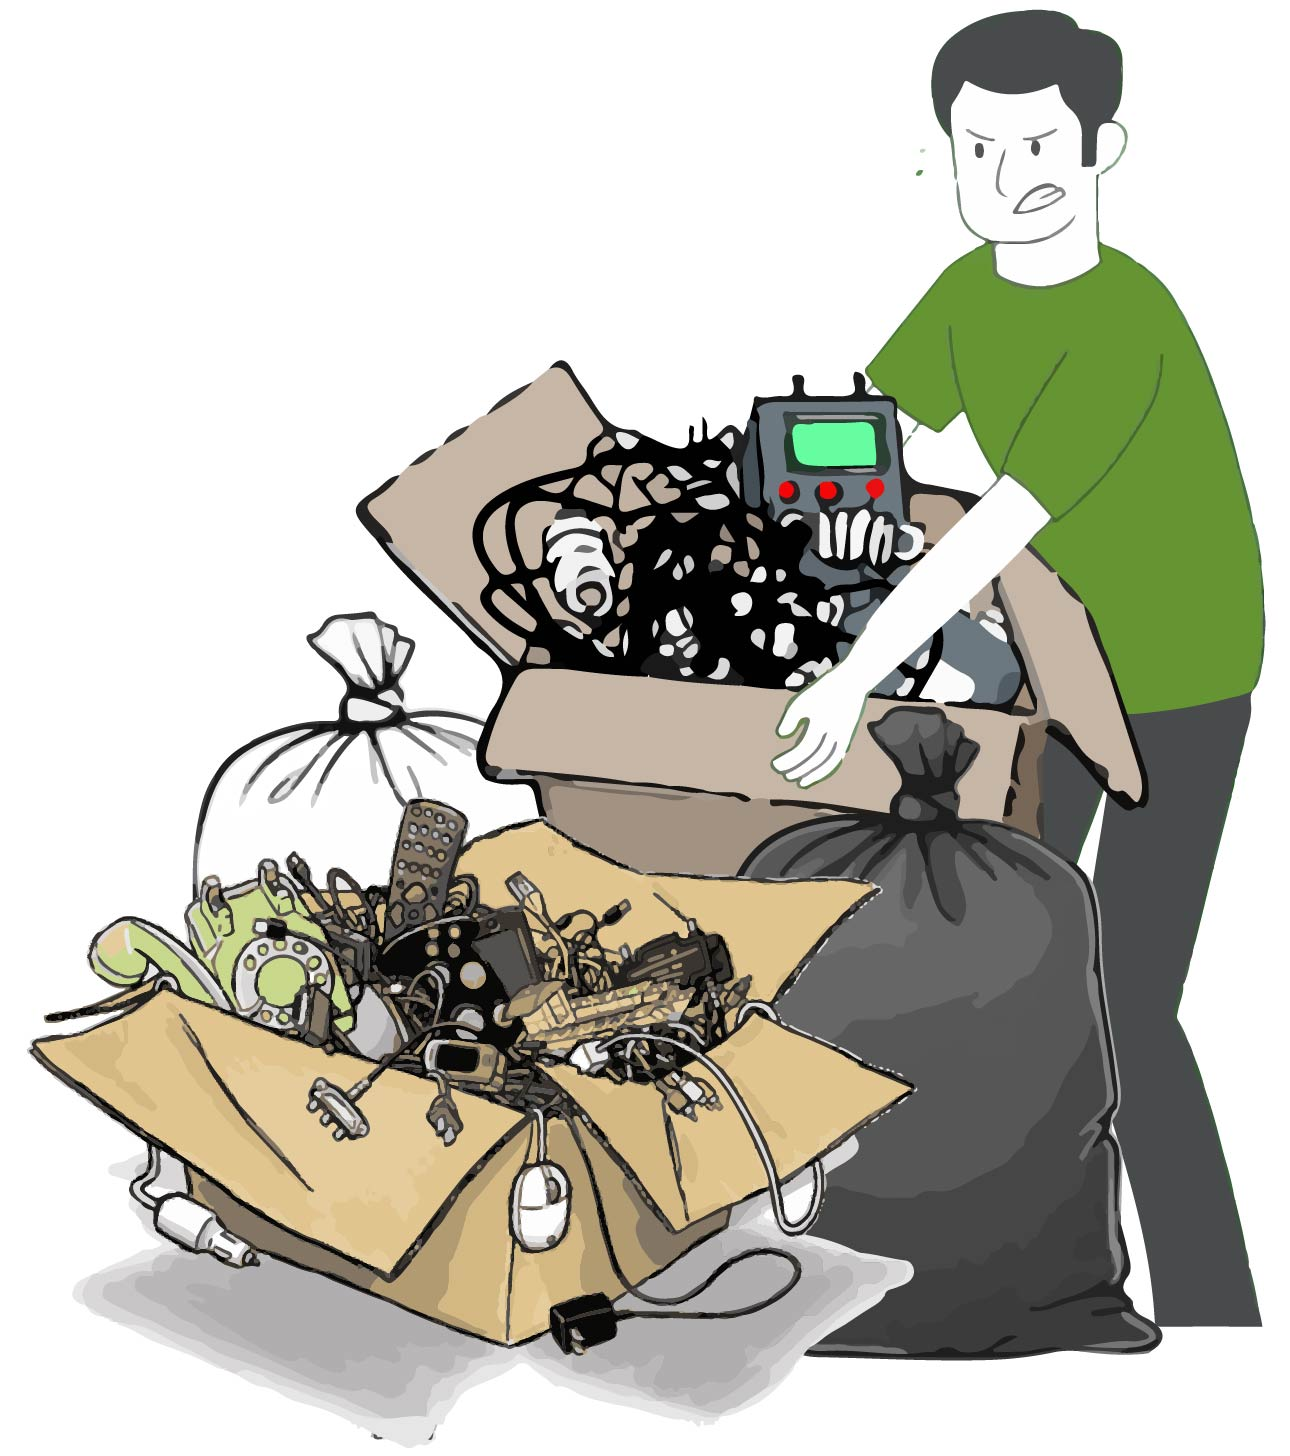 Affordable Junk Removal Services in Wausau WI